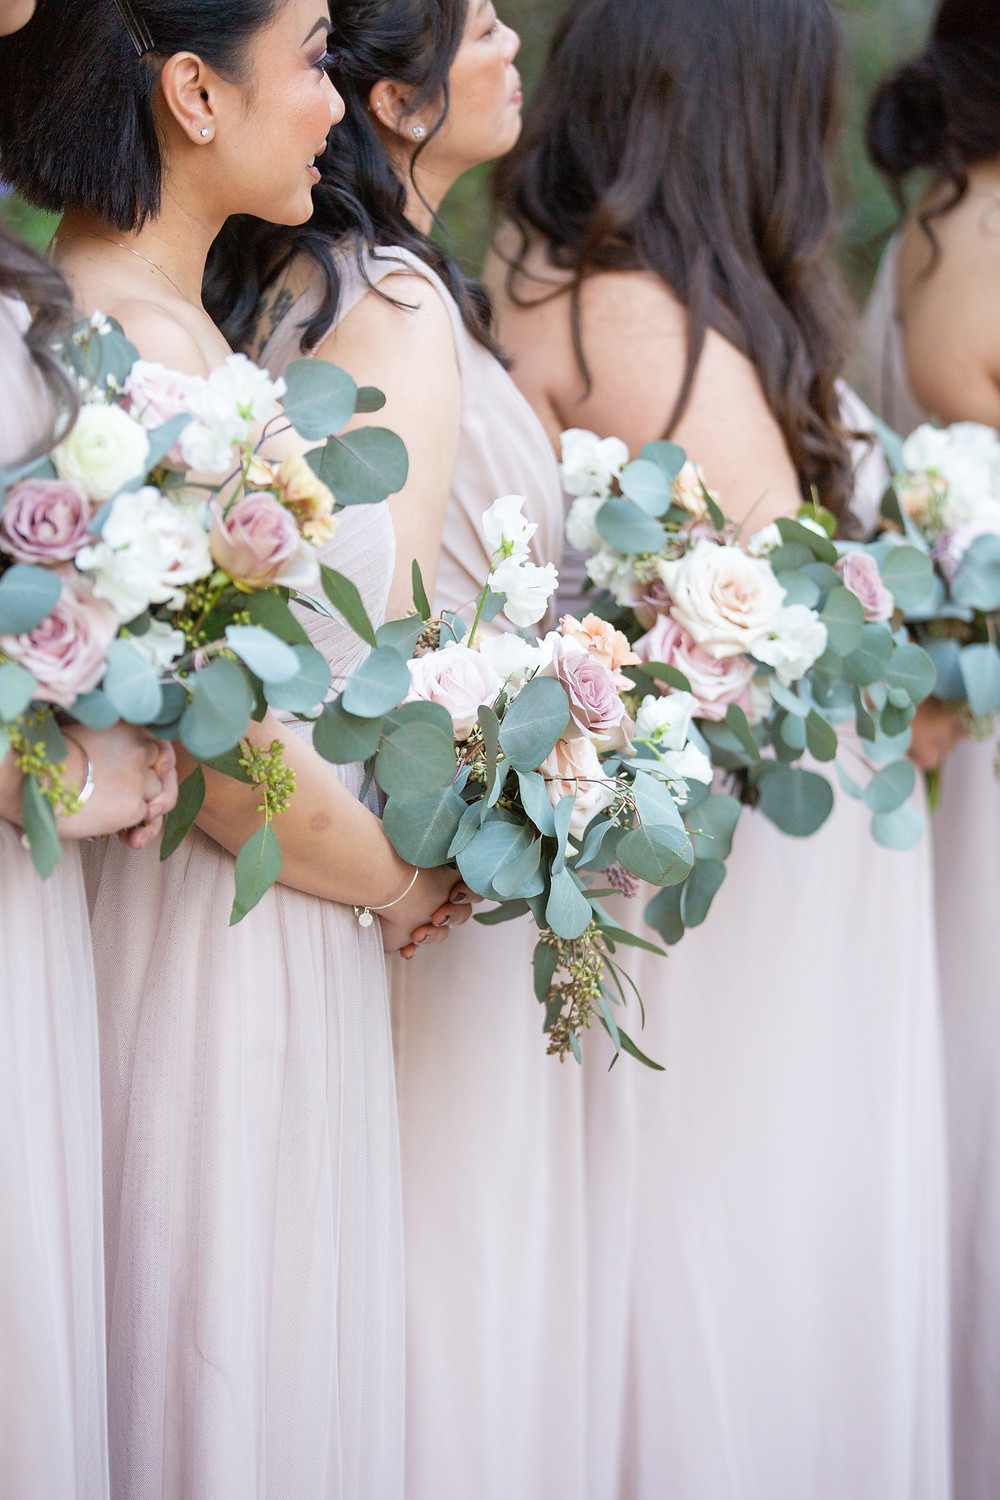 Sweet and dainty posy bridesmaids' bouquets for a purple palette wedding, filled with eucalyptus, sweet peas, carnations, ranunculus and roses that perfectly matched their mauve bridesmaid's dresses for a stunning wedding at Rancho Las Lomas in Orange County, CA made by San Diego wedding florist Le Champange Projects